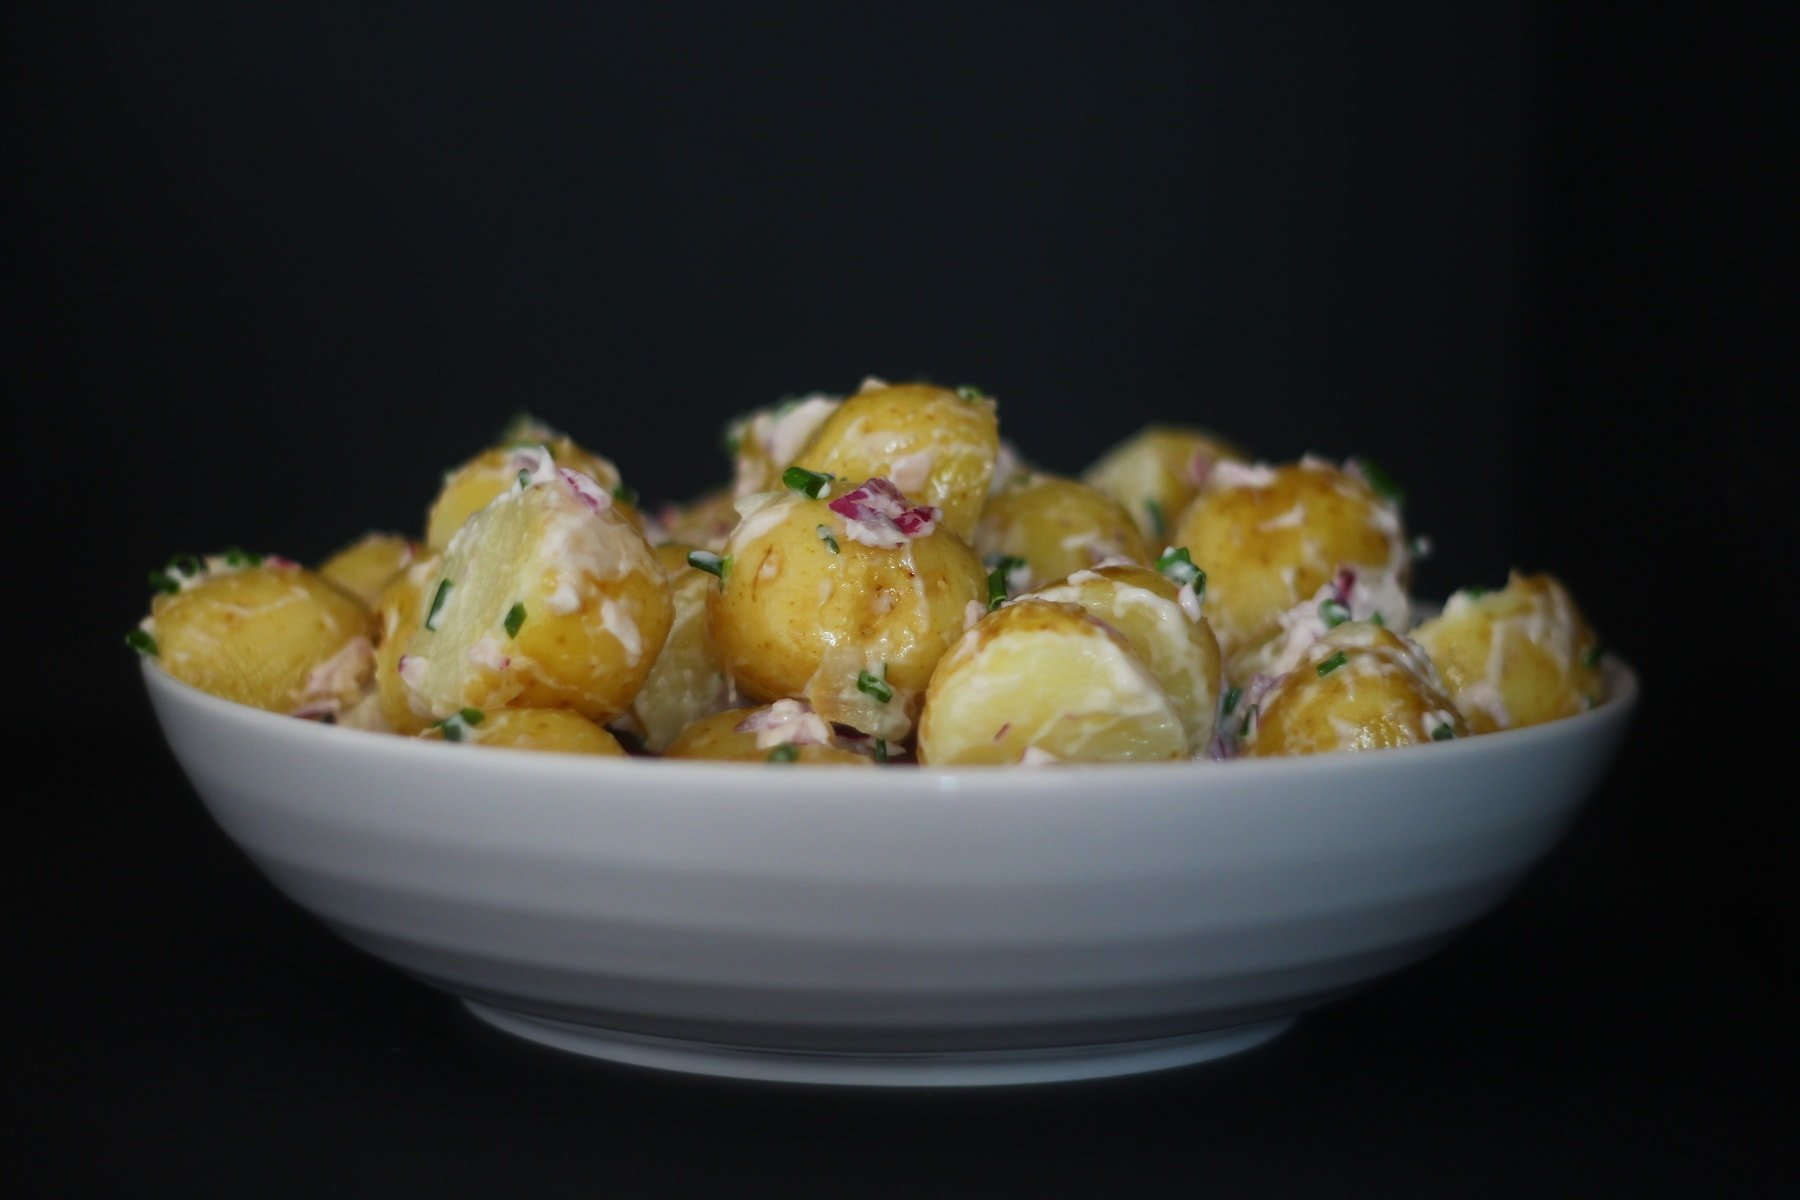 Potato Salad with Mayo Dressing, Red Onion and Chives.